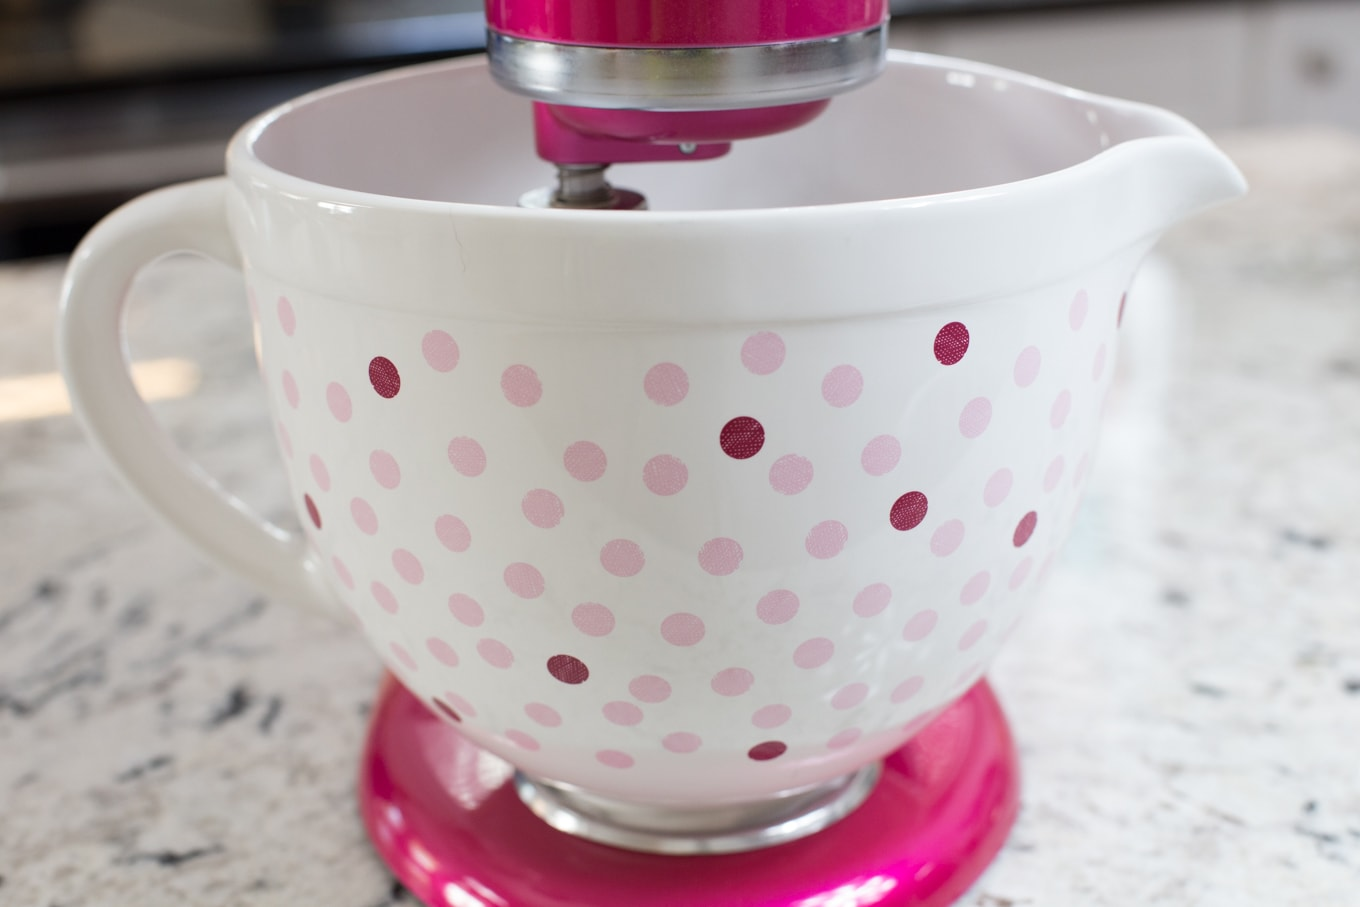 KitchenAid Raspberry Ice Artisan Mixer with Polka Dot Bowl - created to help promote awareness and help fund the fight against breast cancer through KitchenAid and the Susan Komen Foundation.